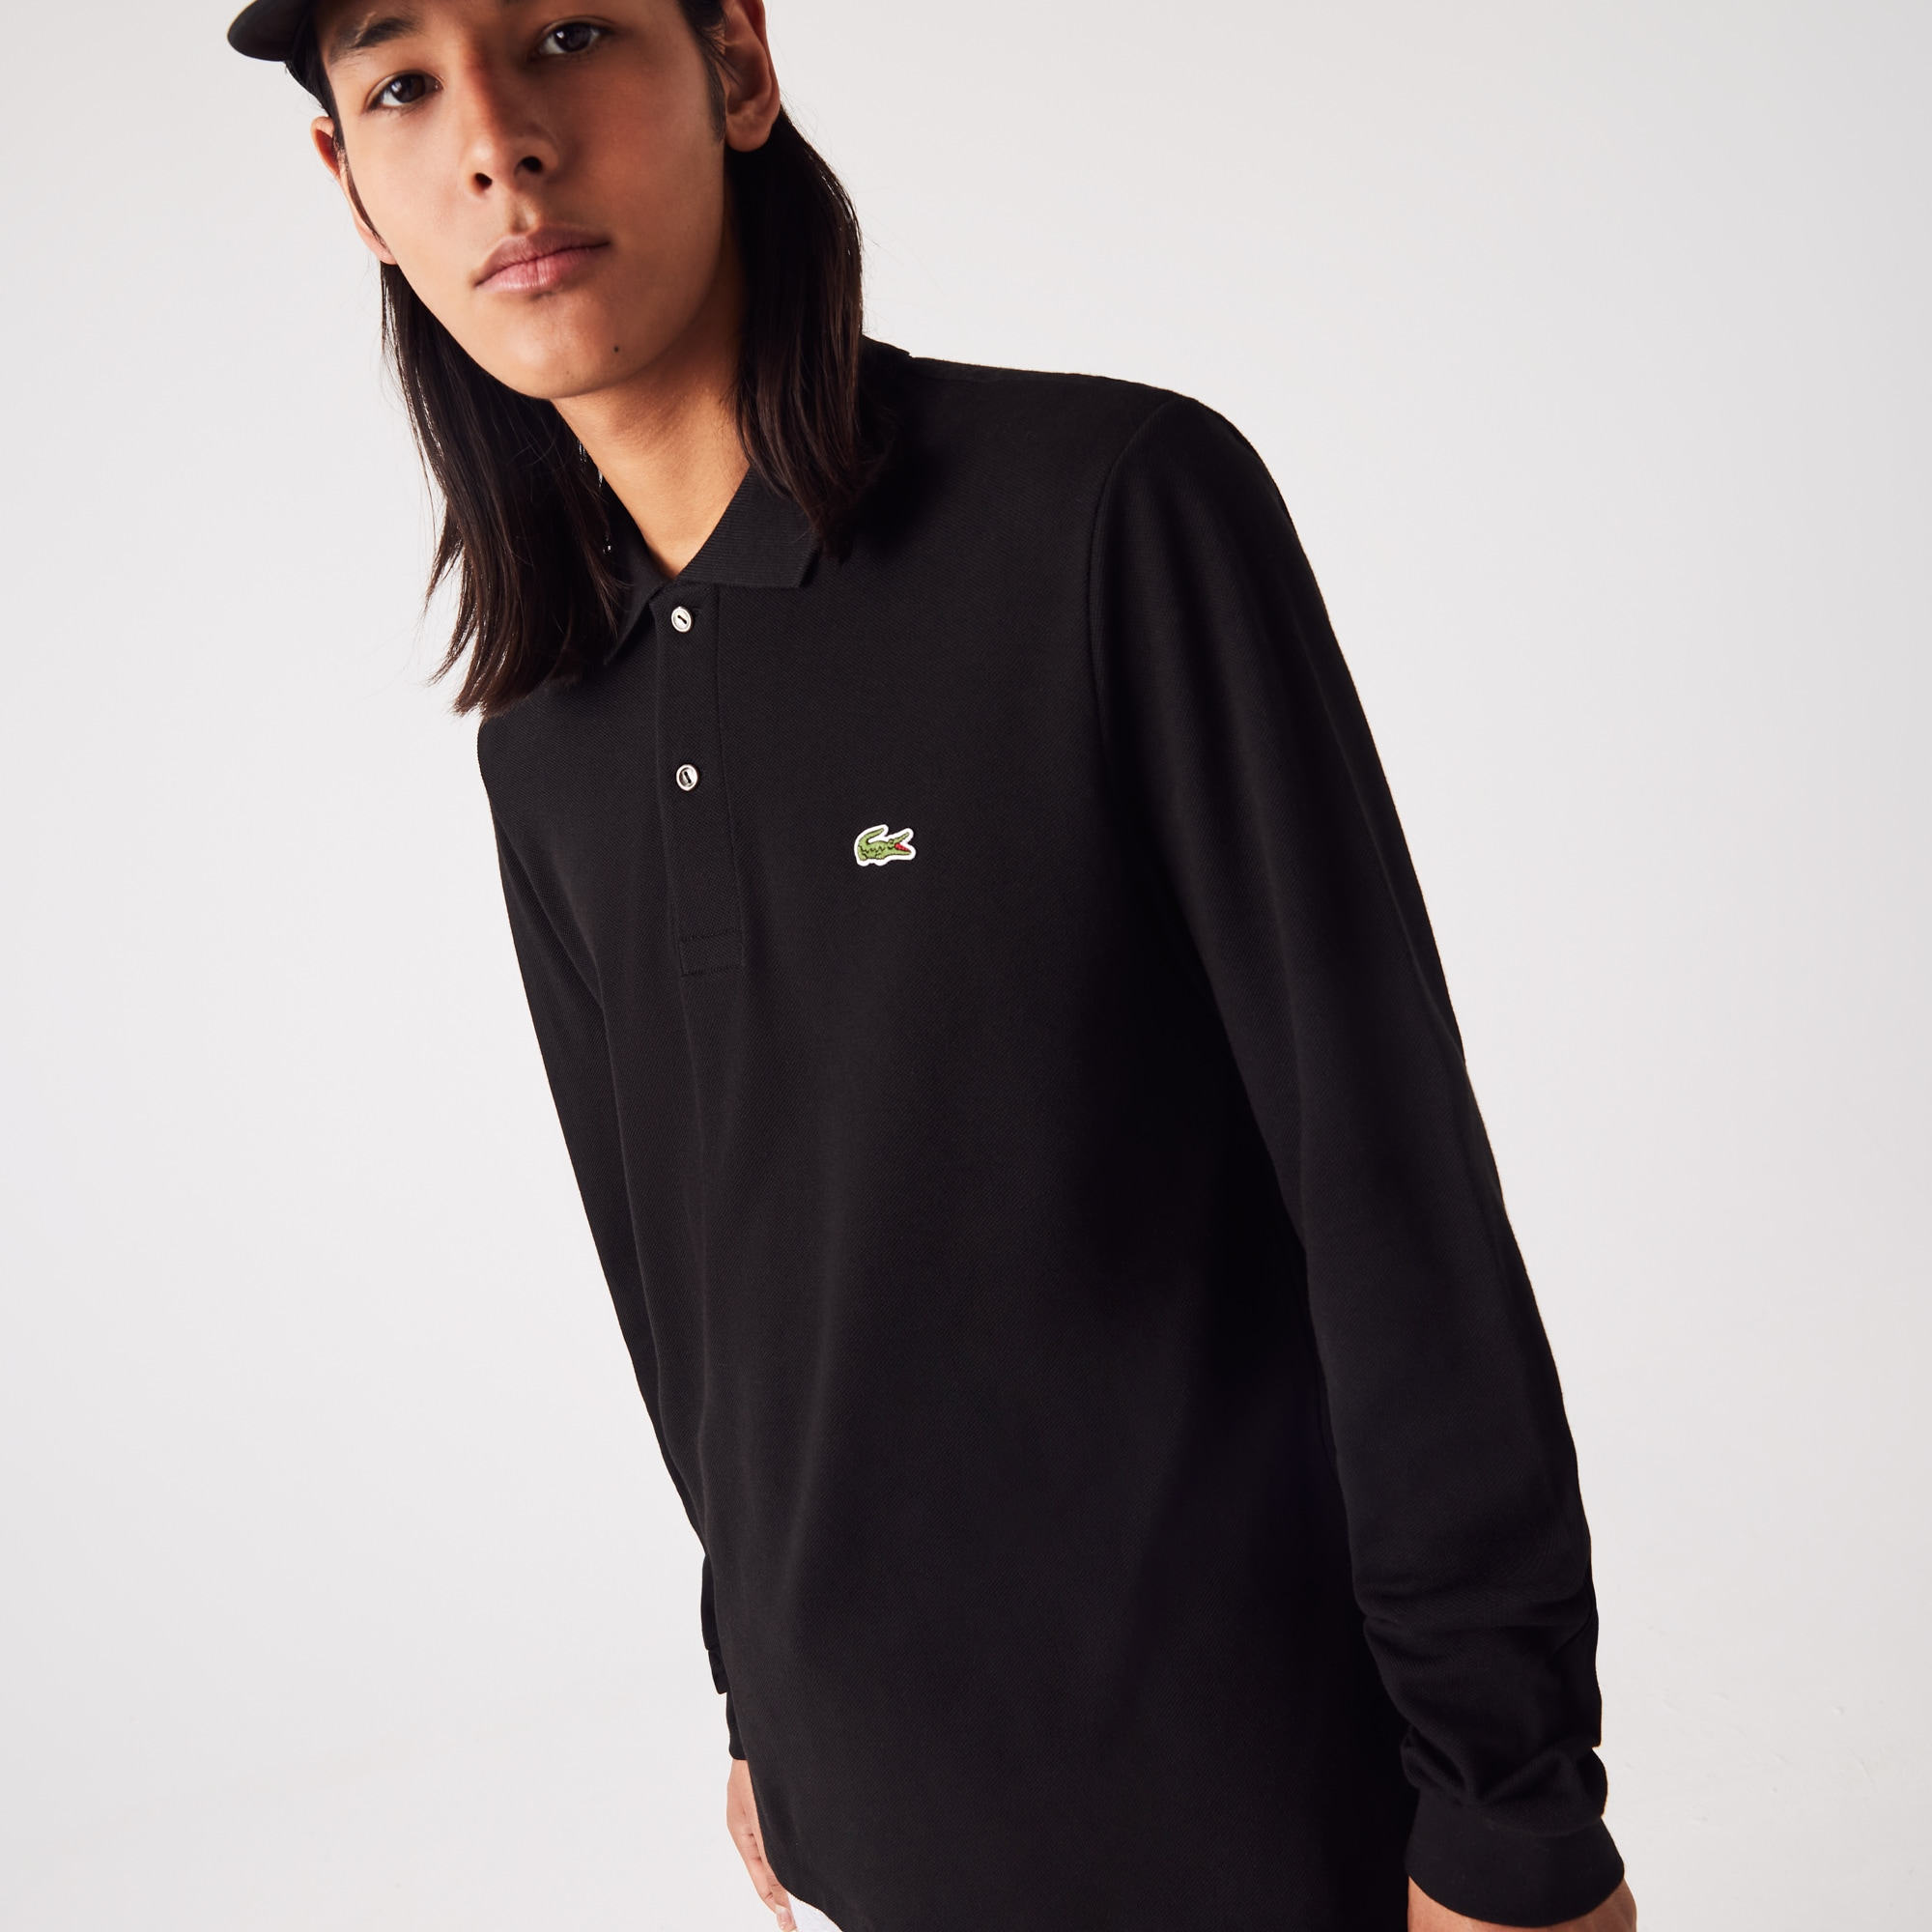 4ad0284cea2 Lacoste Men S Long-Sleeve L.12.12 Polo Shirt In Black